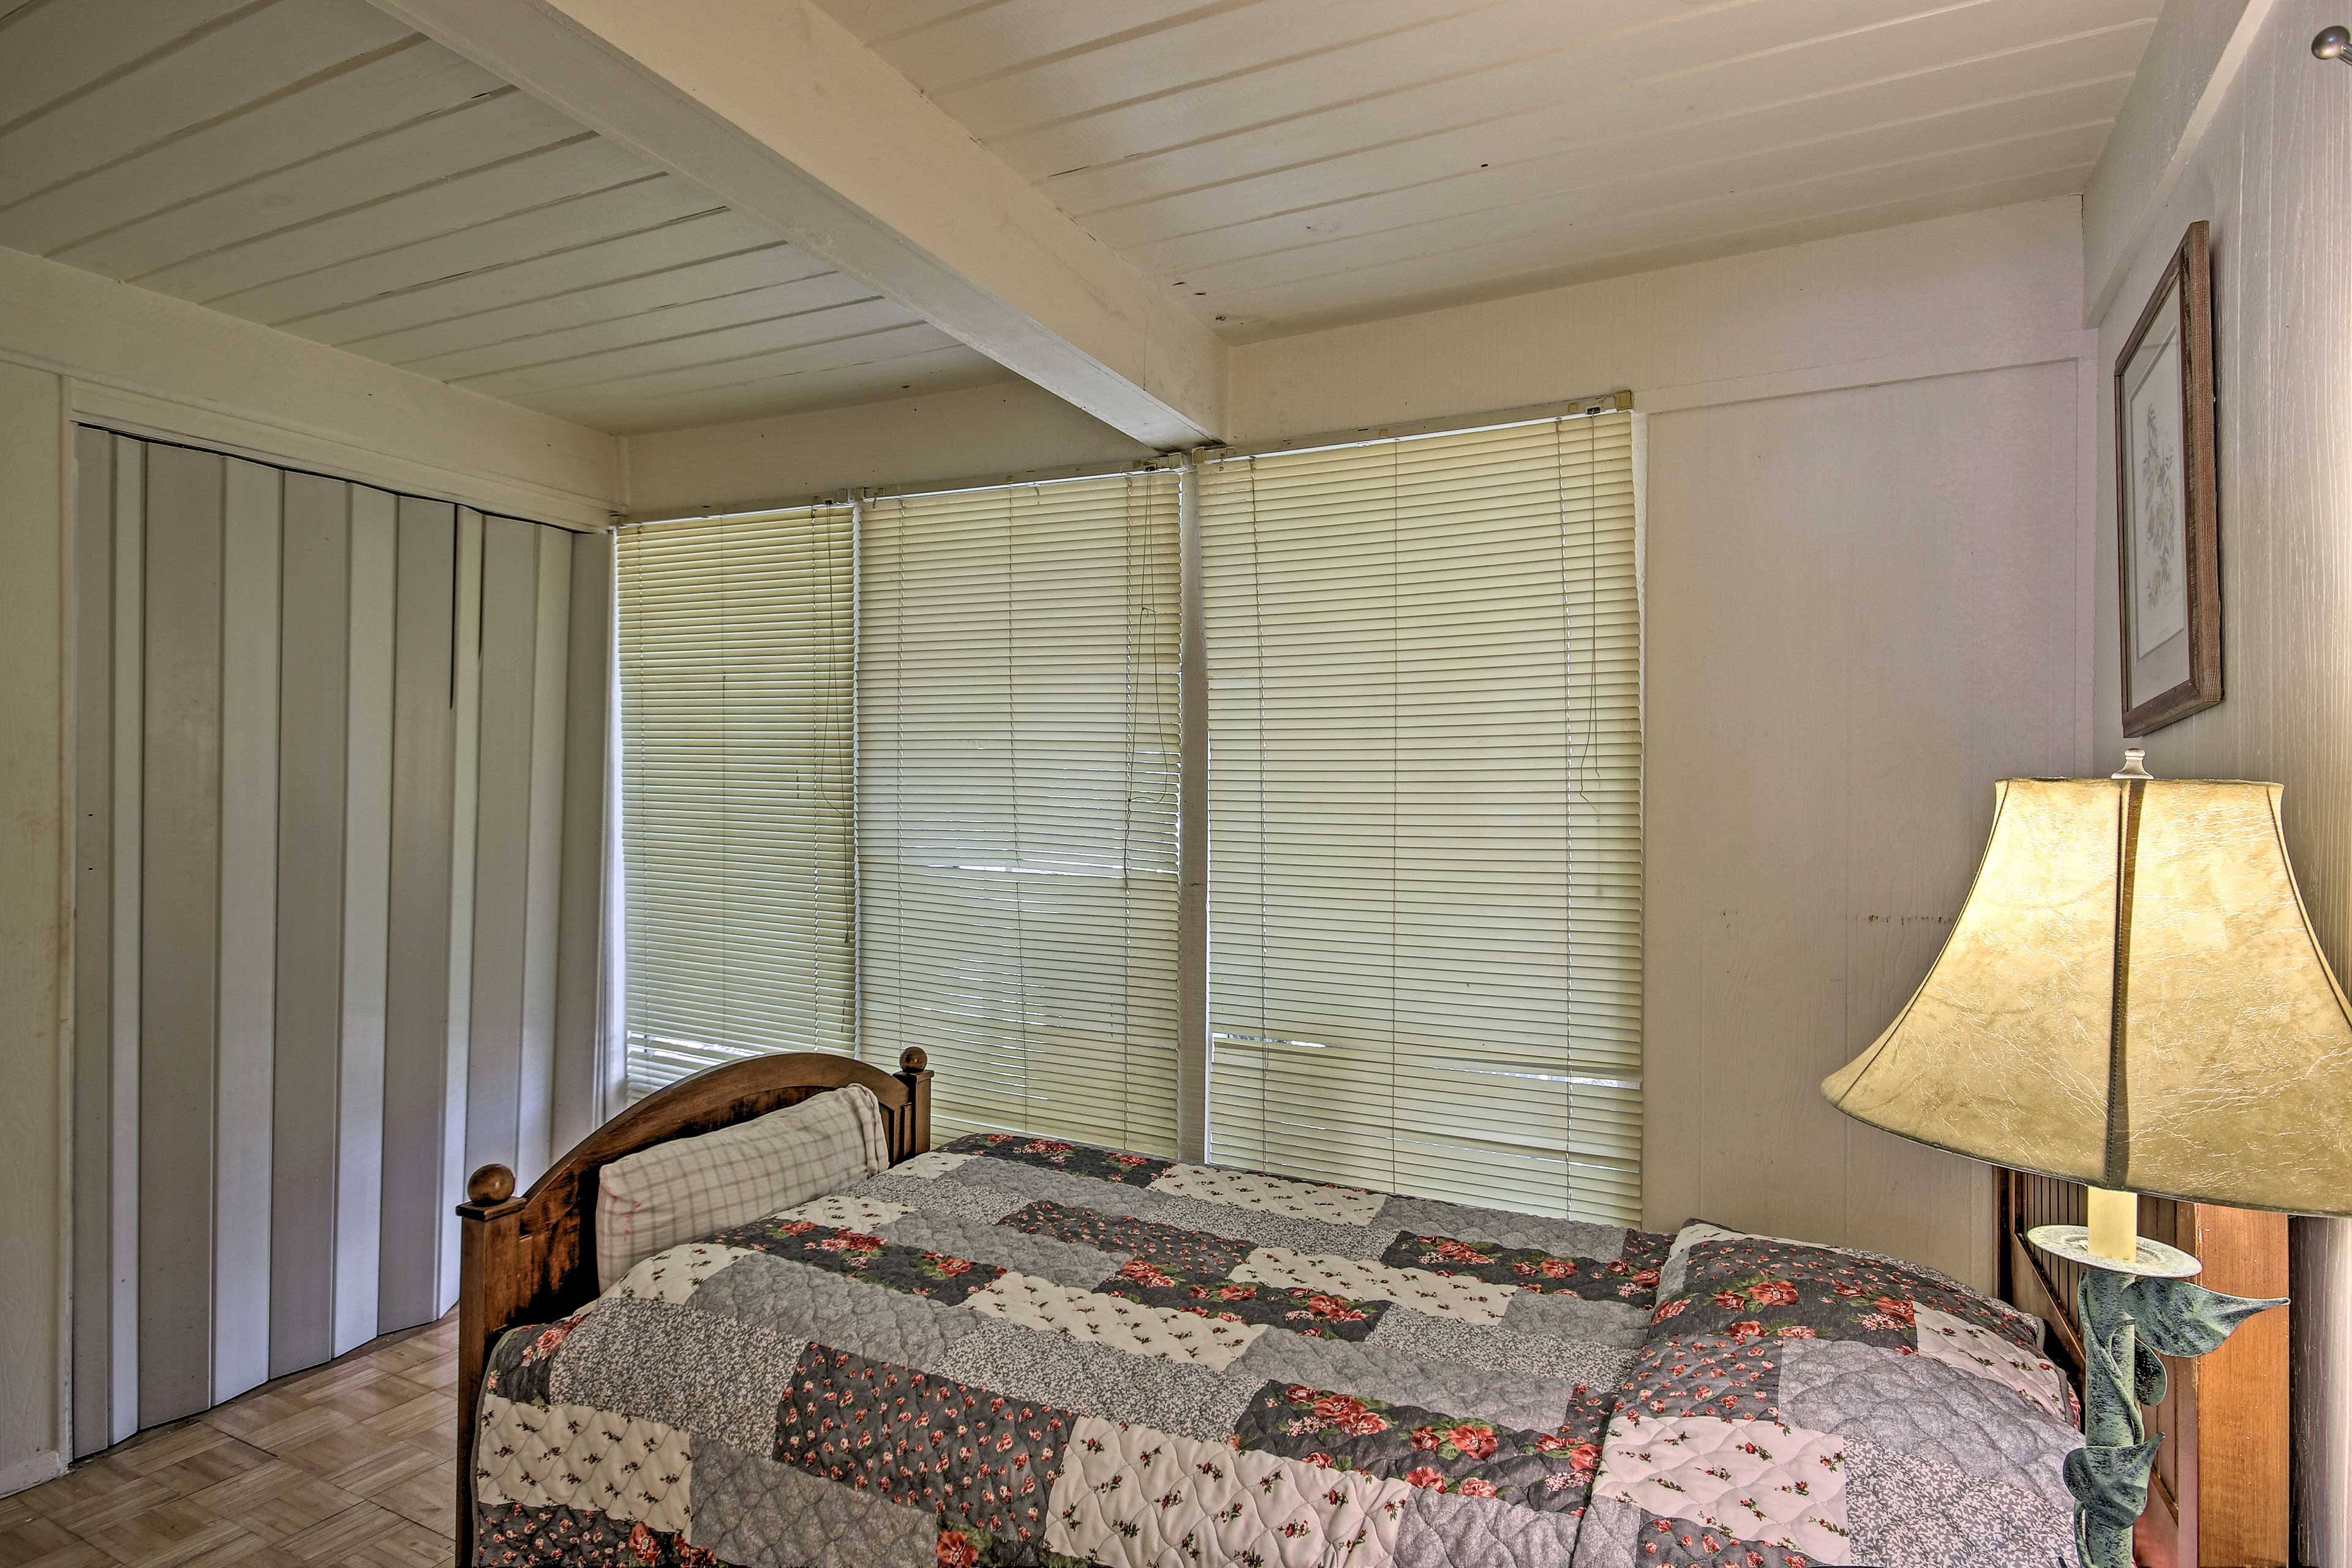 This bedroom comfortably sleeps 2 guests in a twin bed and twin trundle.